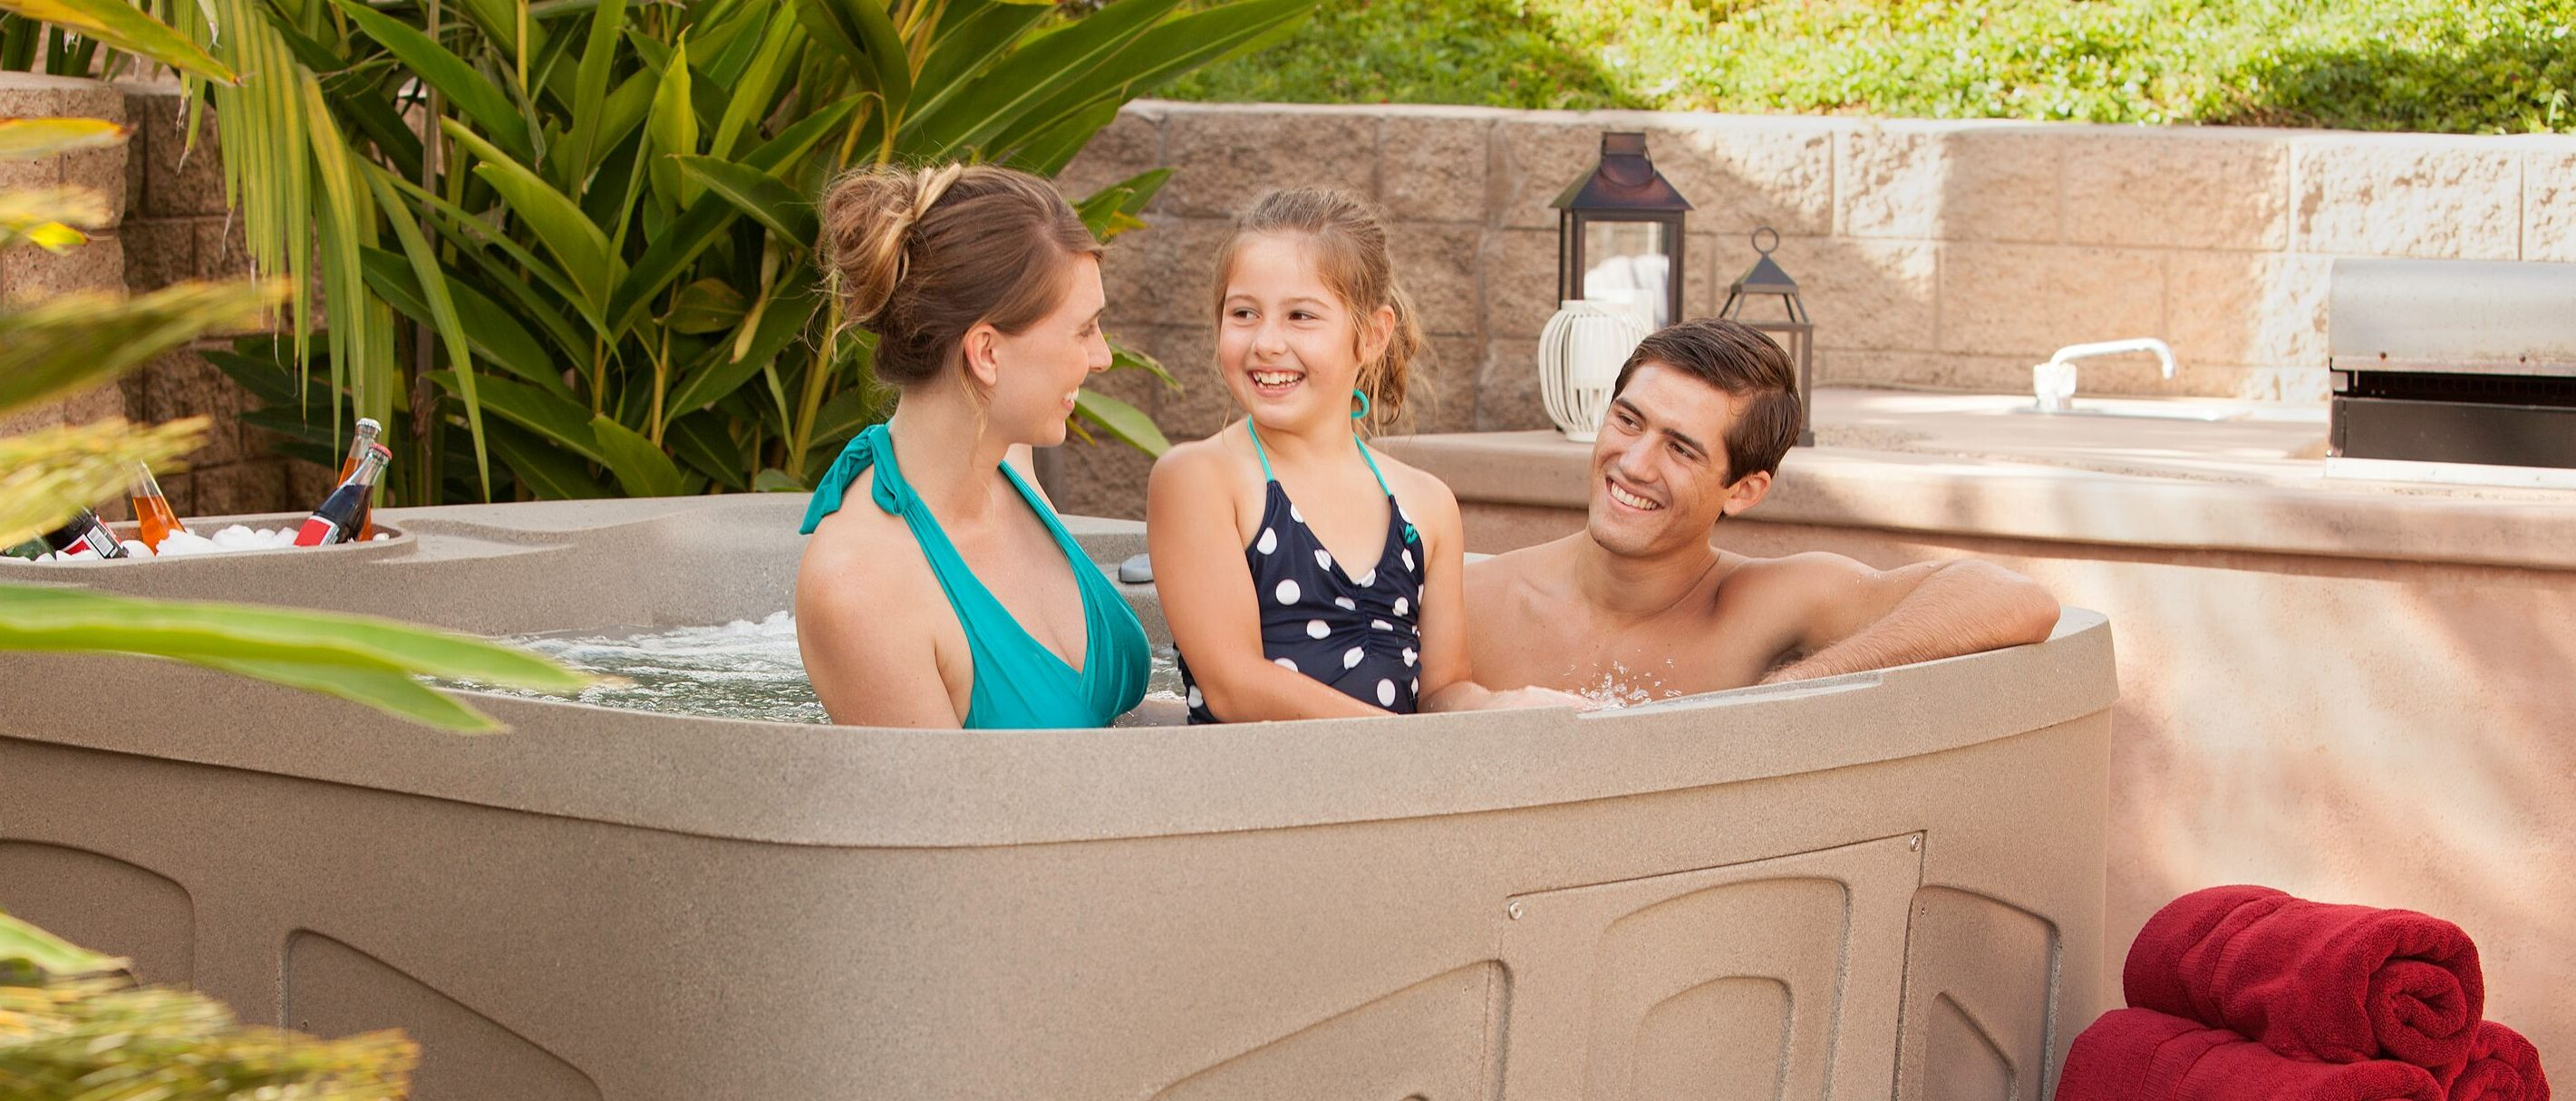 Fun Hot Tub Games to Play for Every Season